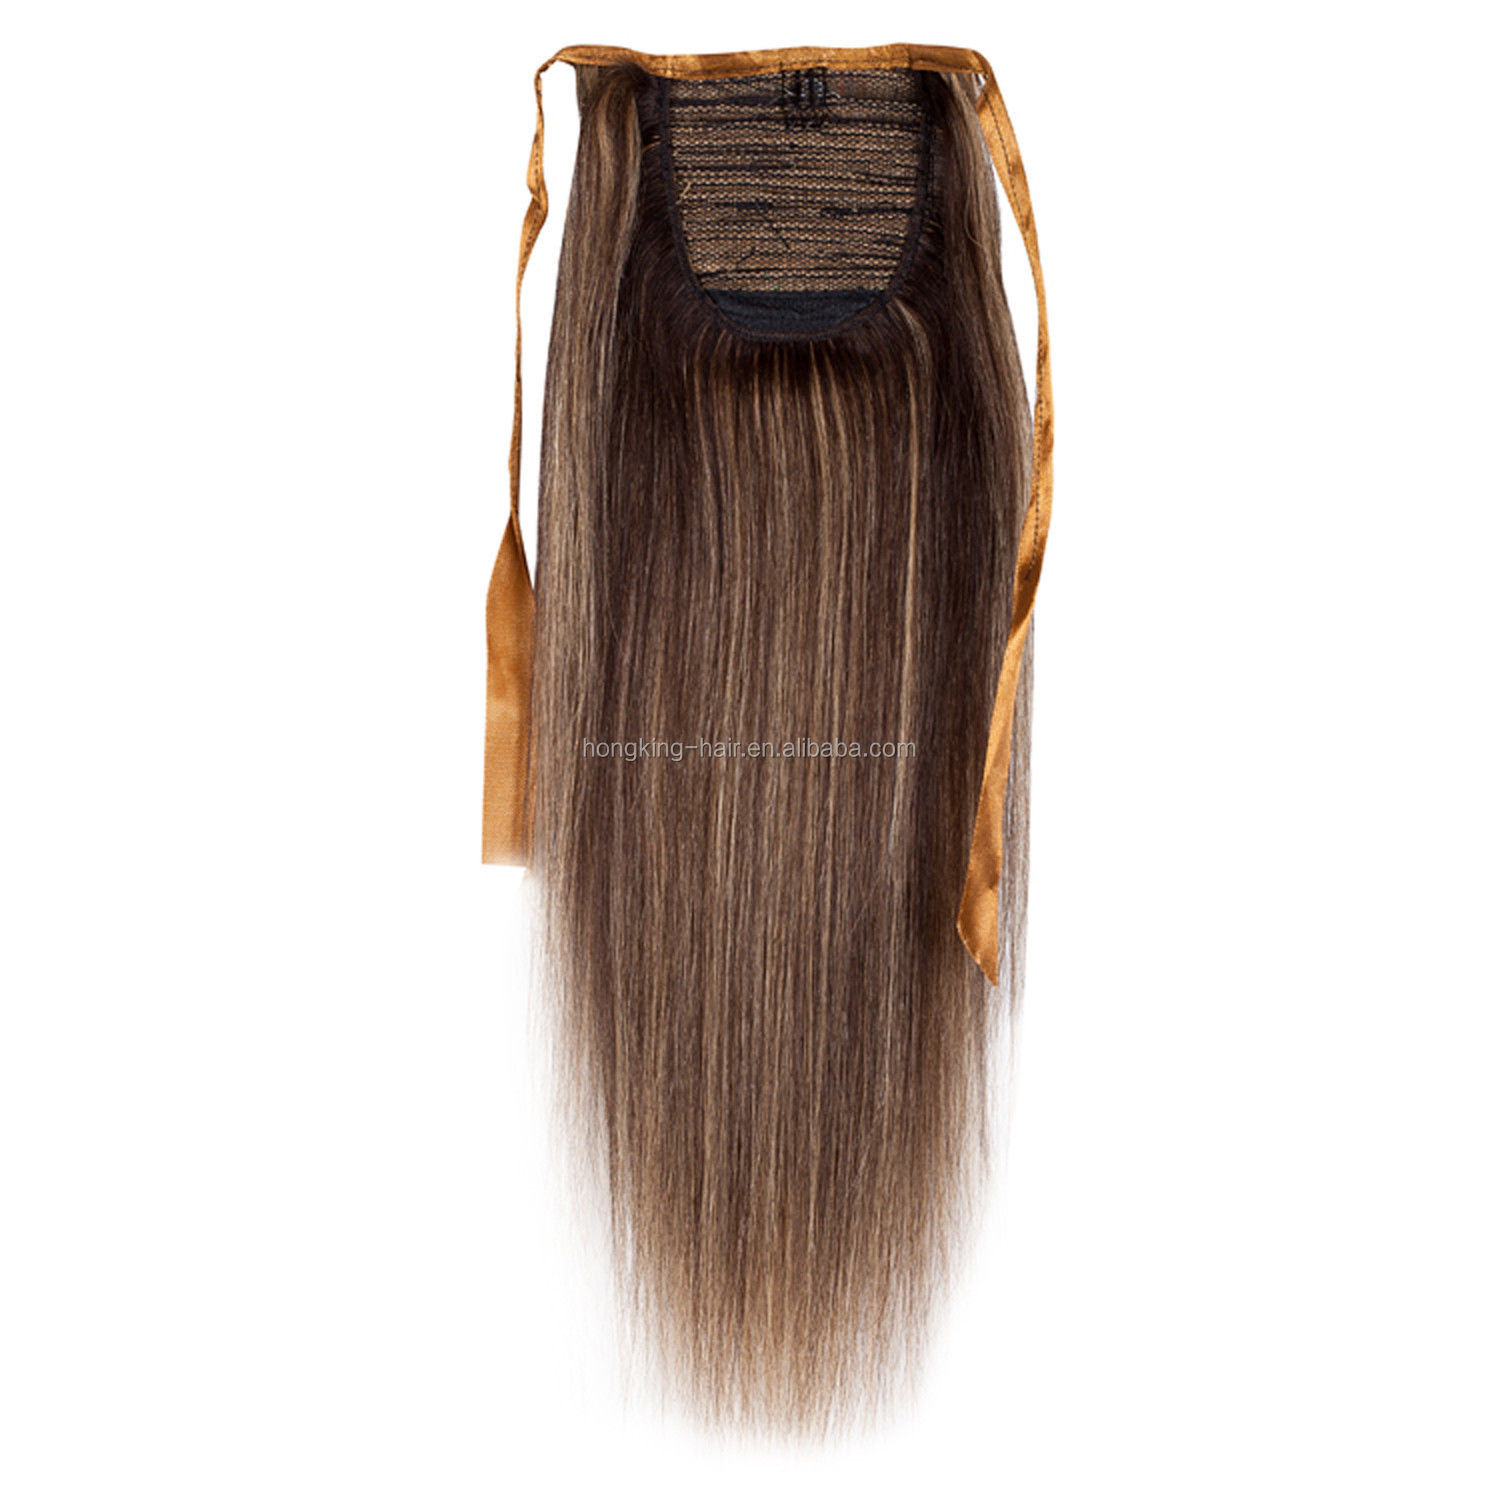 Quality human hair pony tailscheap pony tail hair extensions quality human hair pony tails cheap pony tail hair extensions pmusecretfo Choice Image